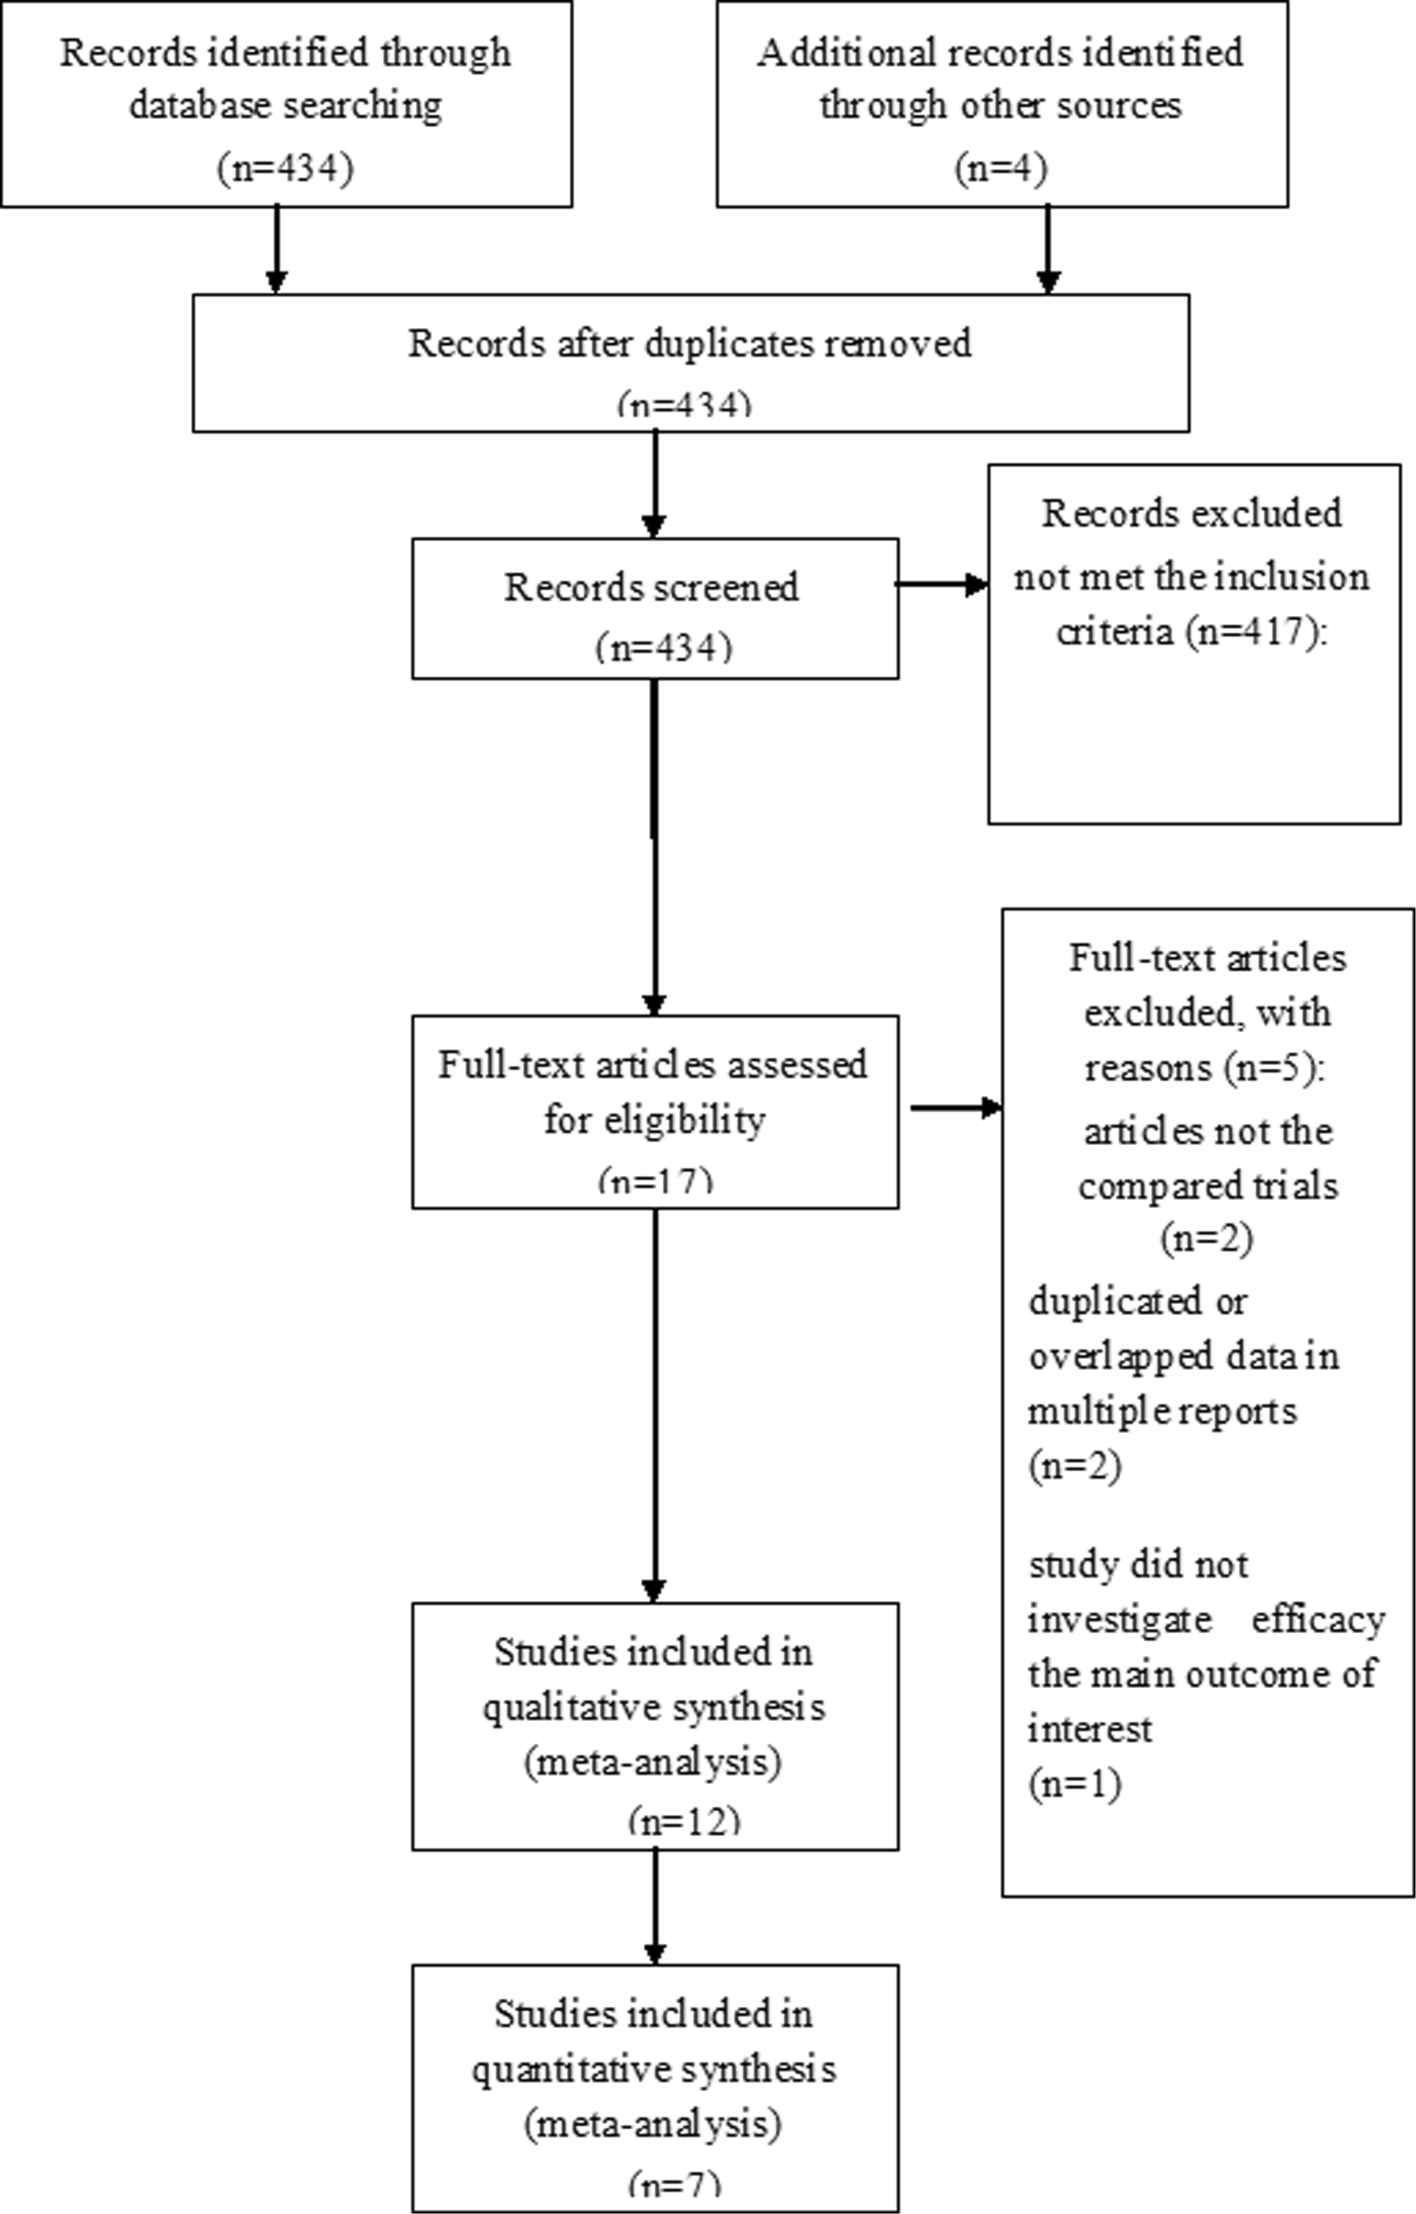 Comparison Of Analgesic Effect Of Oxycodone And Morphine On Patients